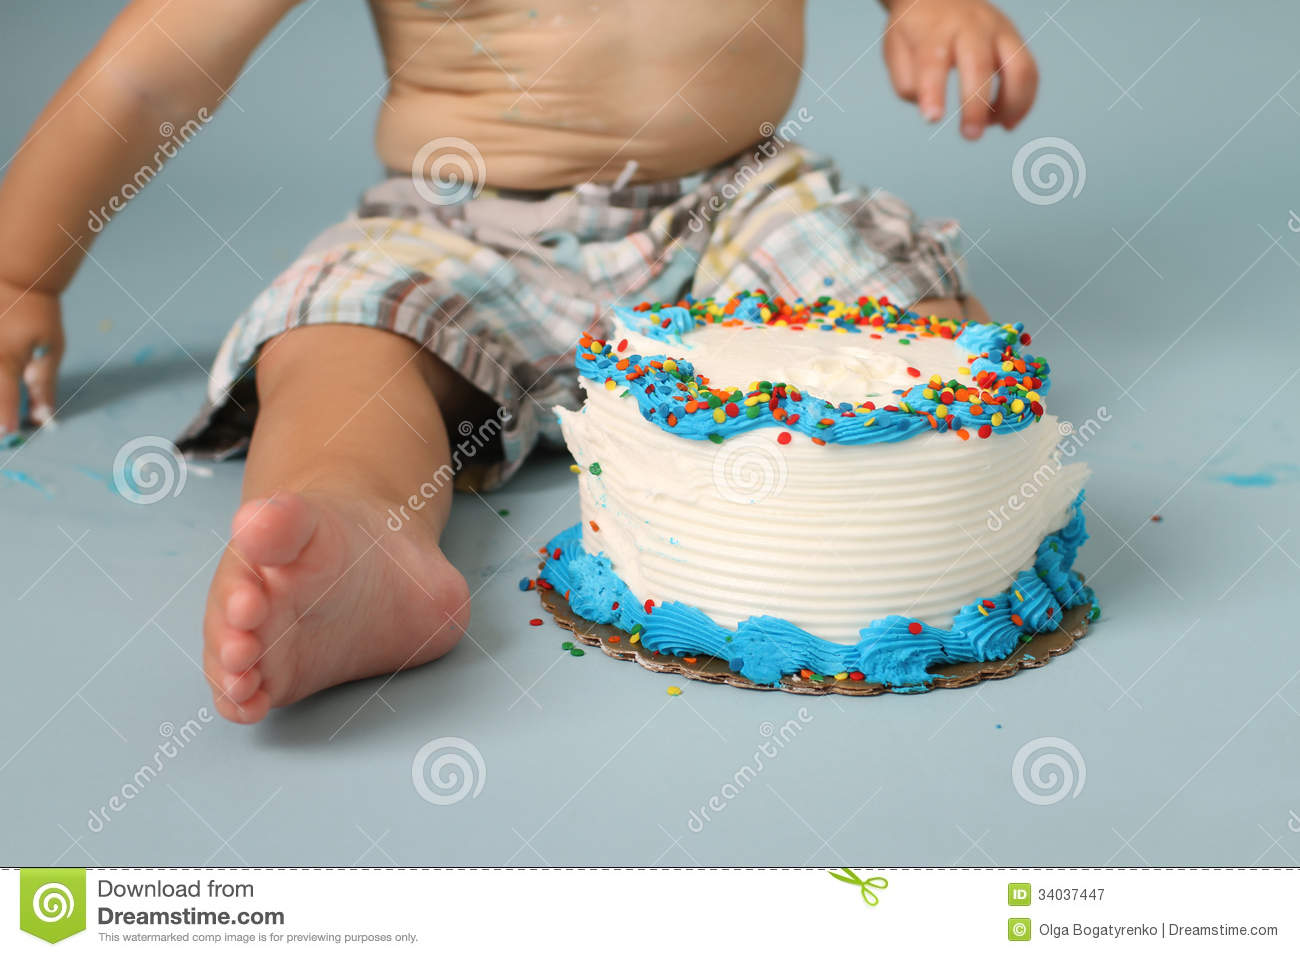 Smashed Cake Clipart : Birthday Cake Smash Royalty Free Stock Photography - Image ...